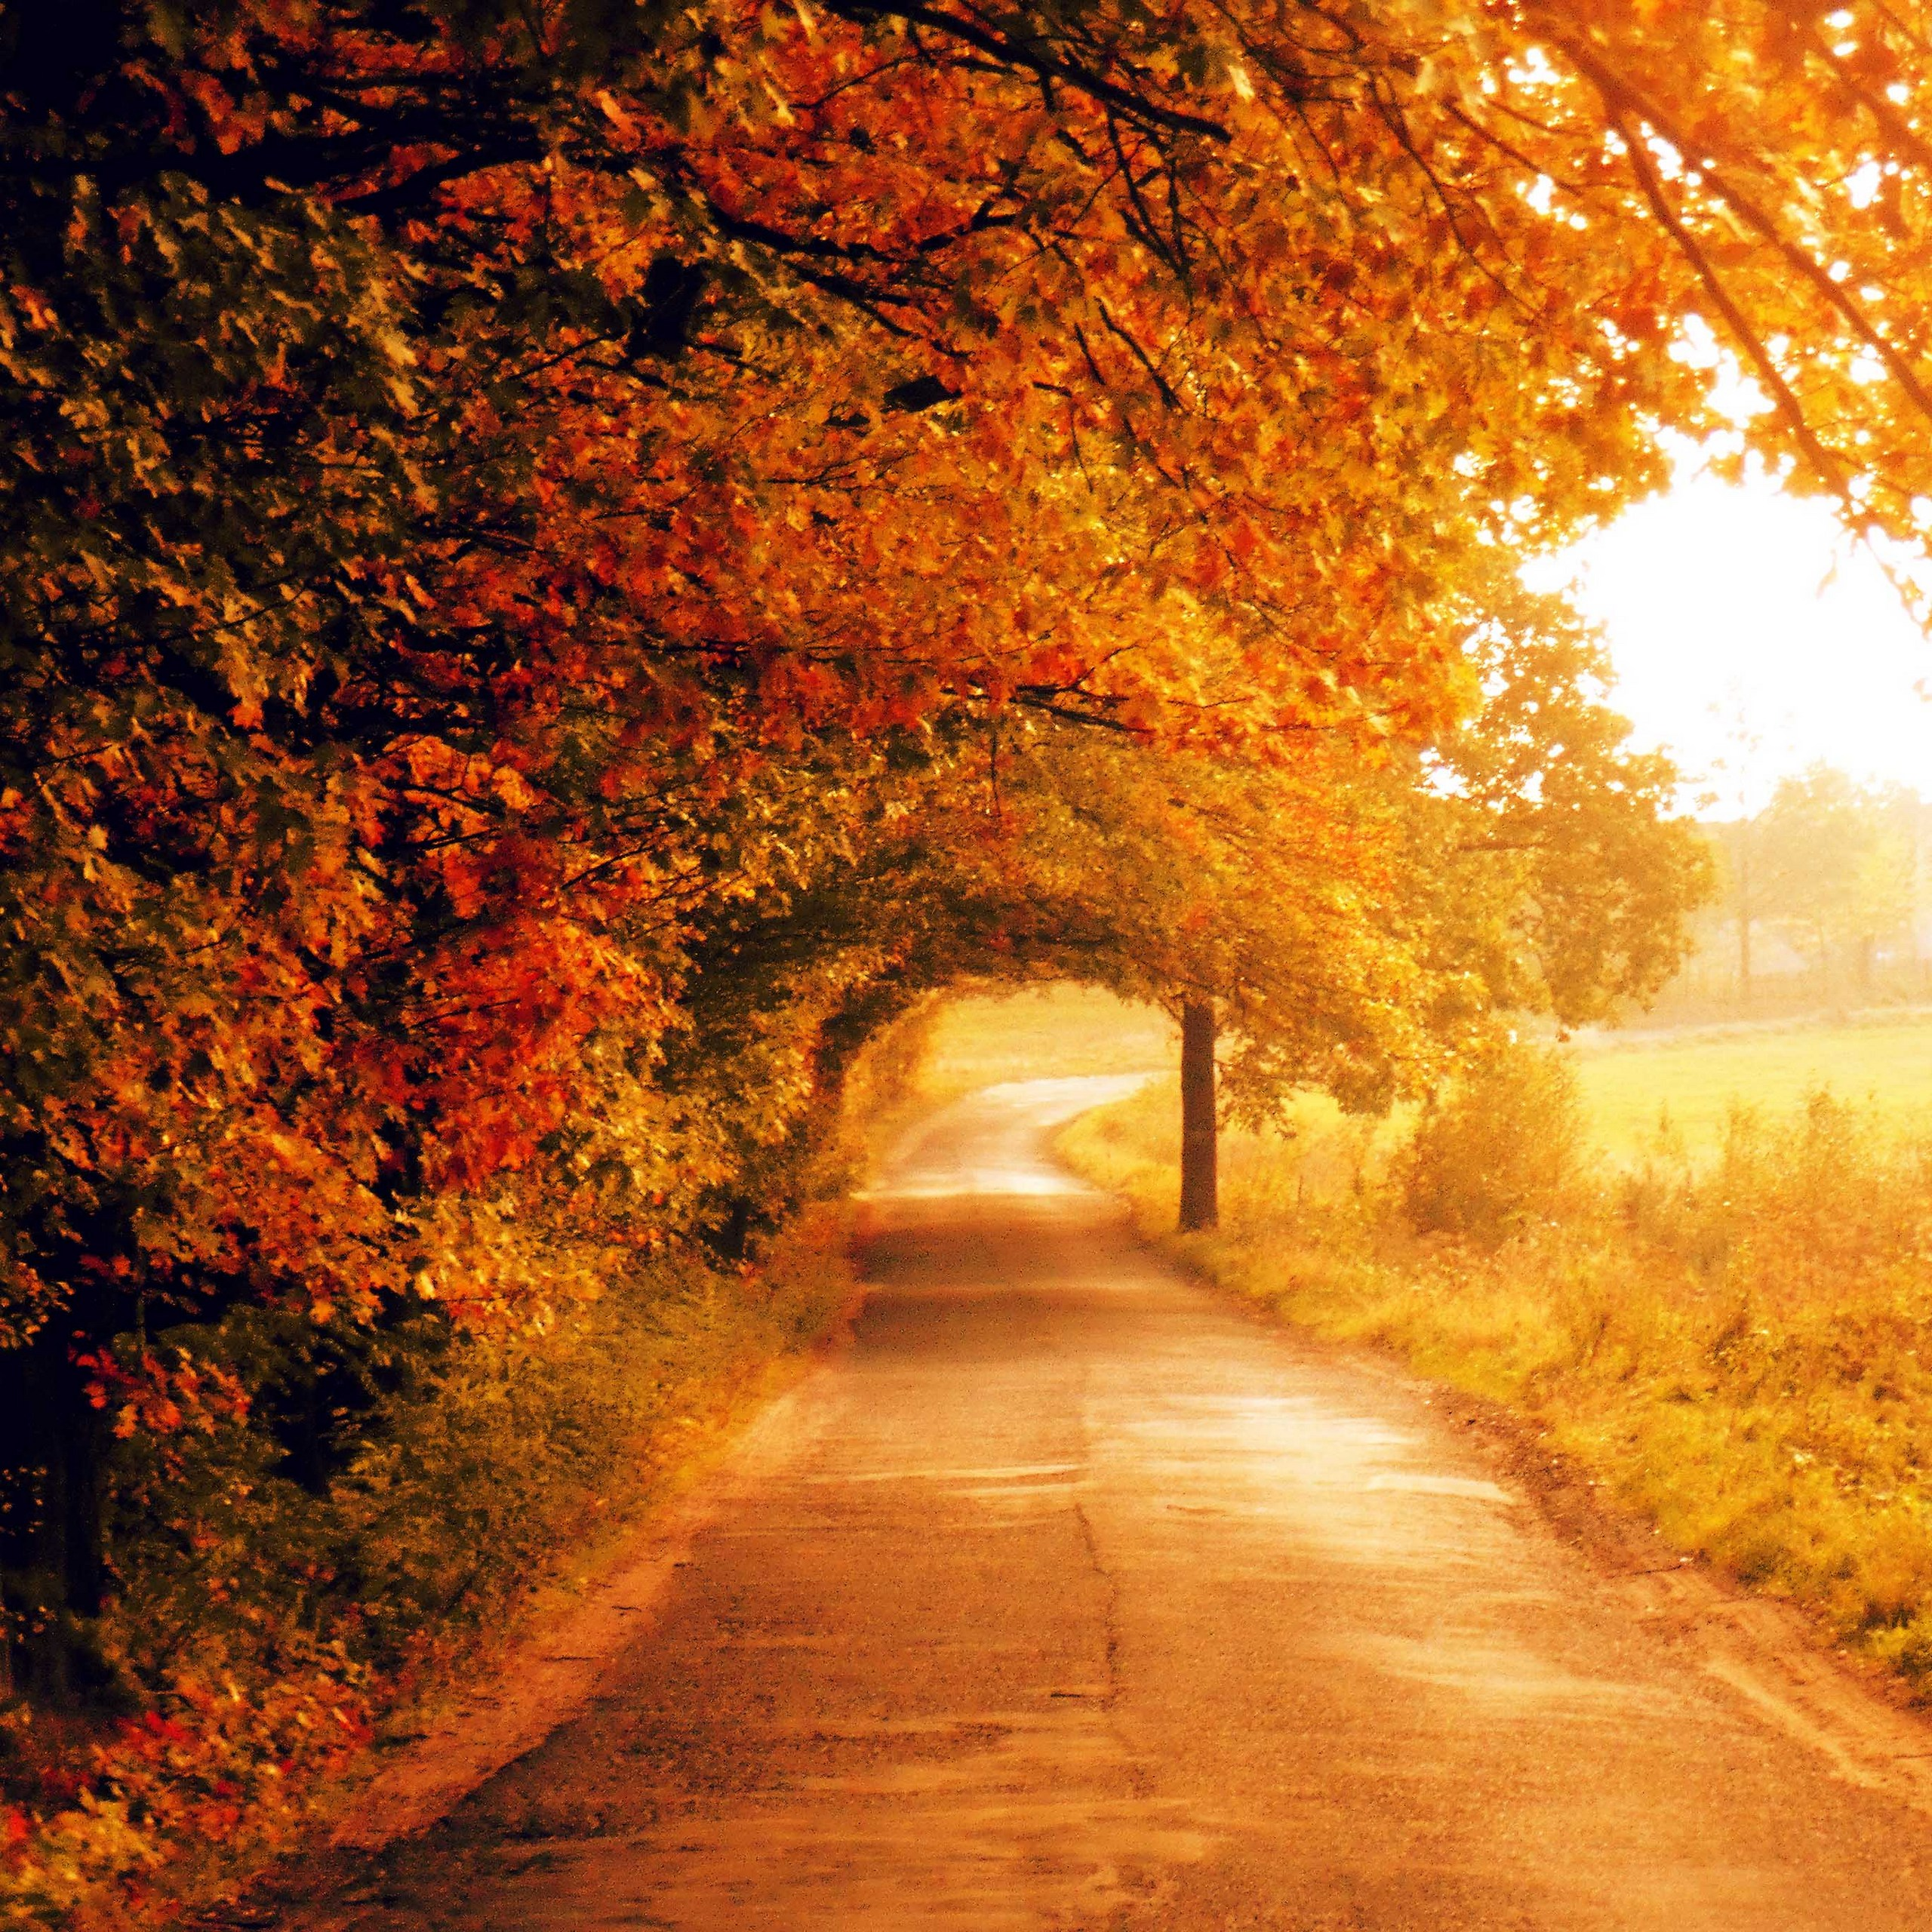 Autumn is the time for dreaming